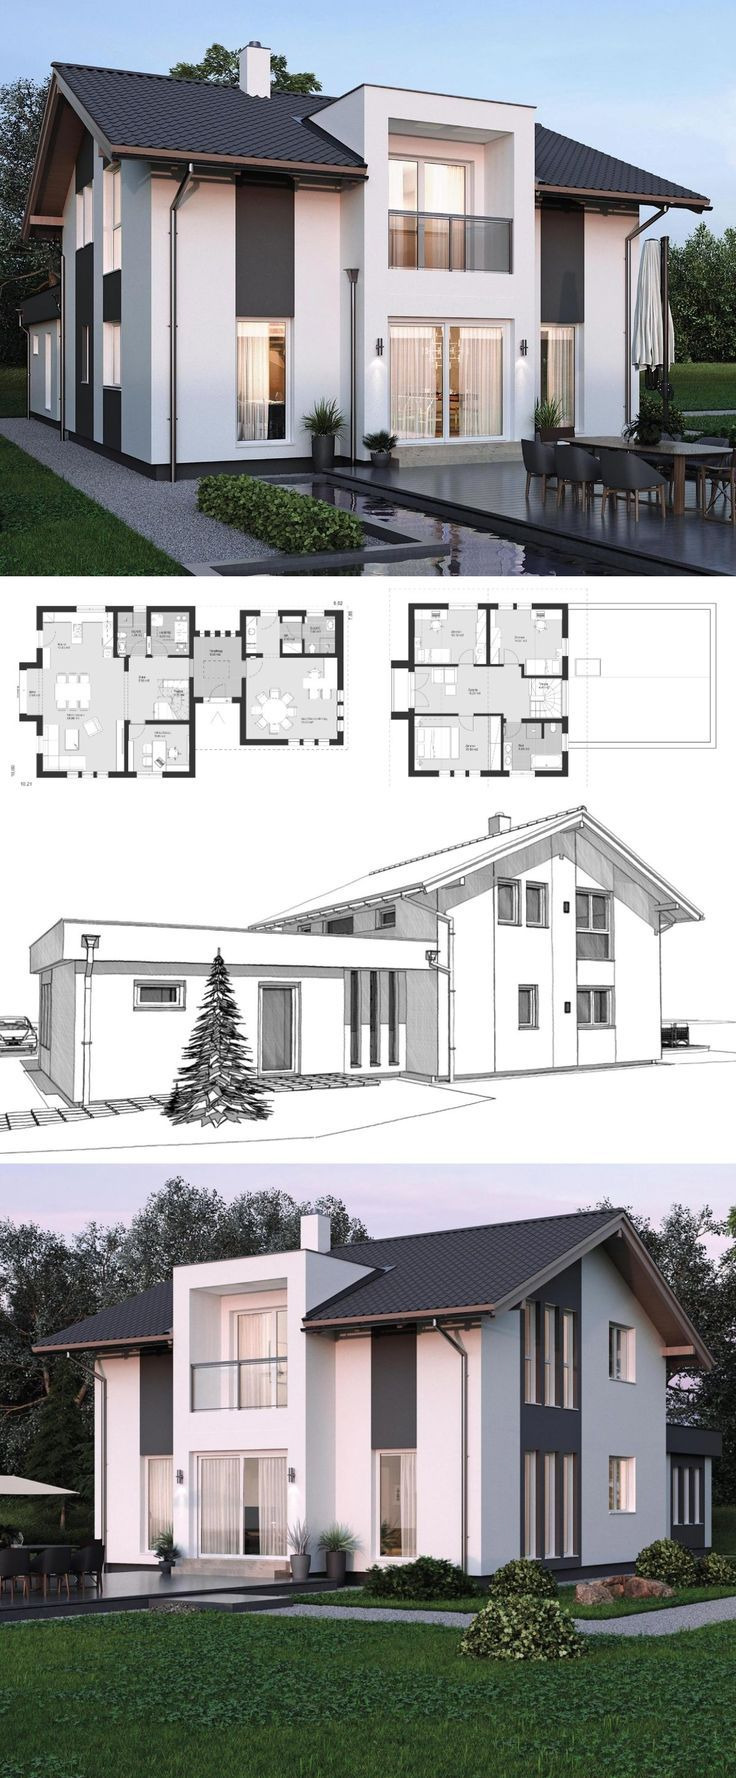 Designer House Plans with Interior Photos Fresh Modern Contemporary Styles Architecture Design House Plans